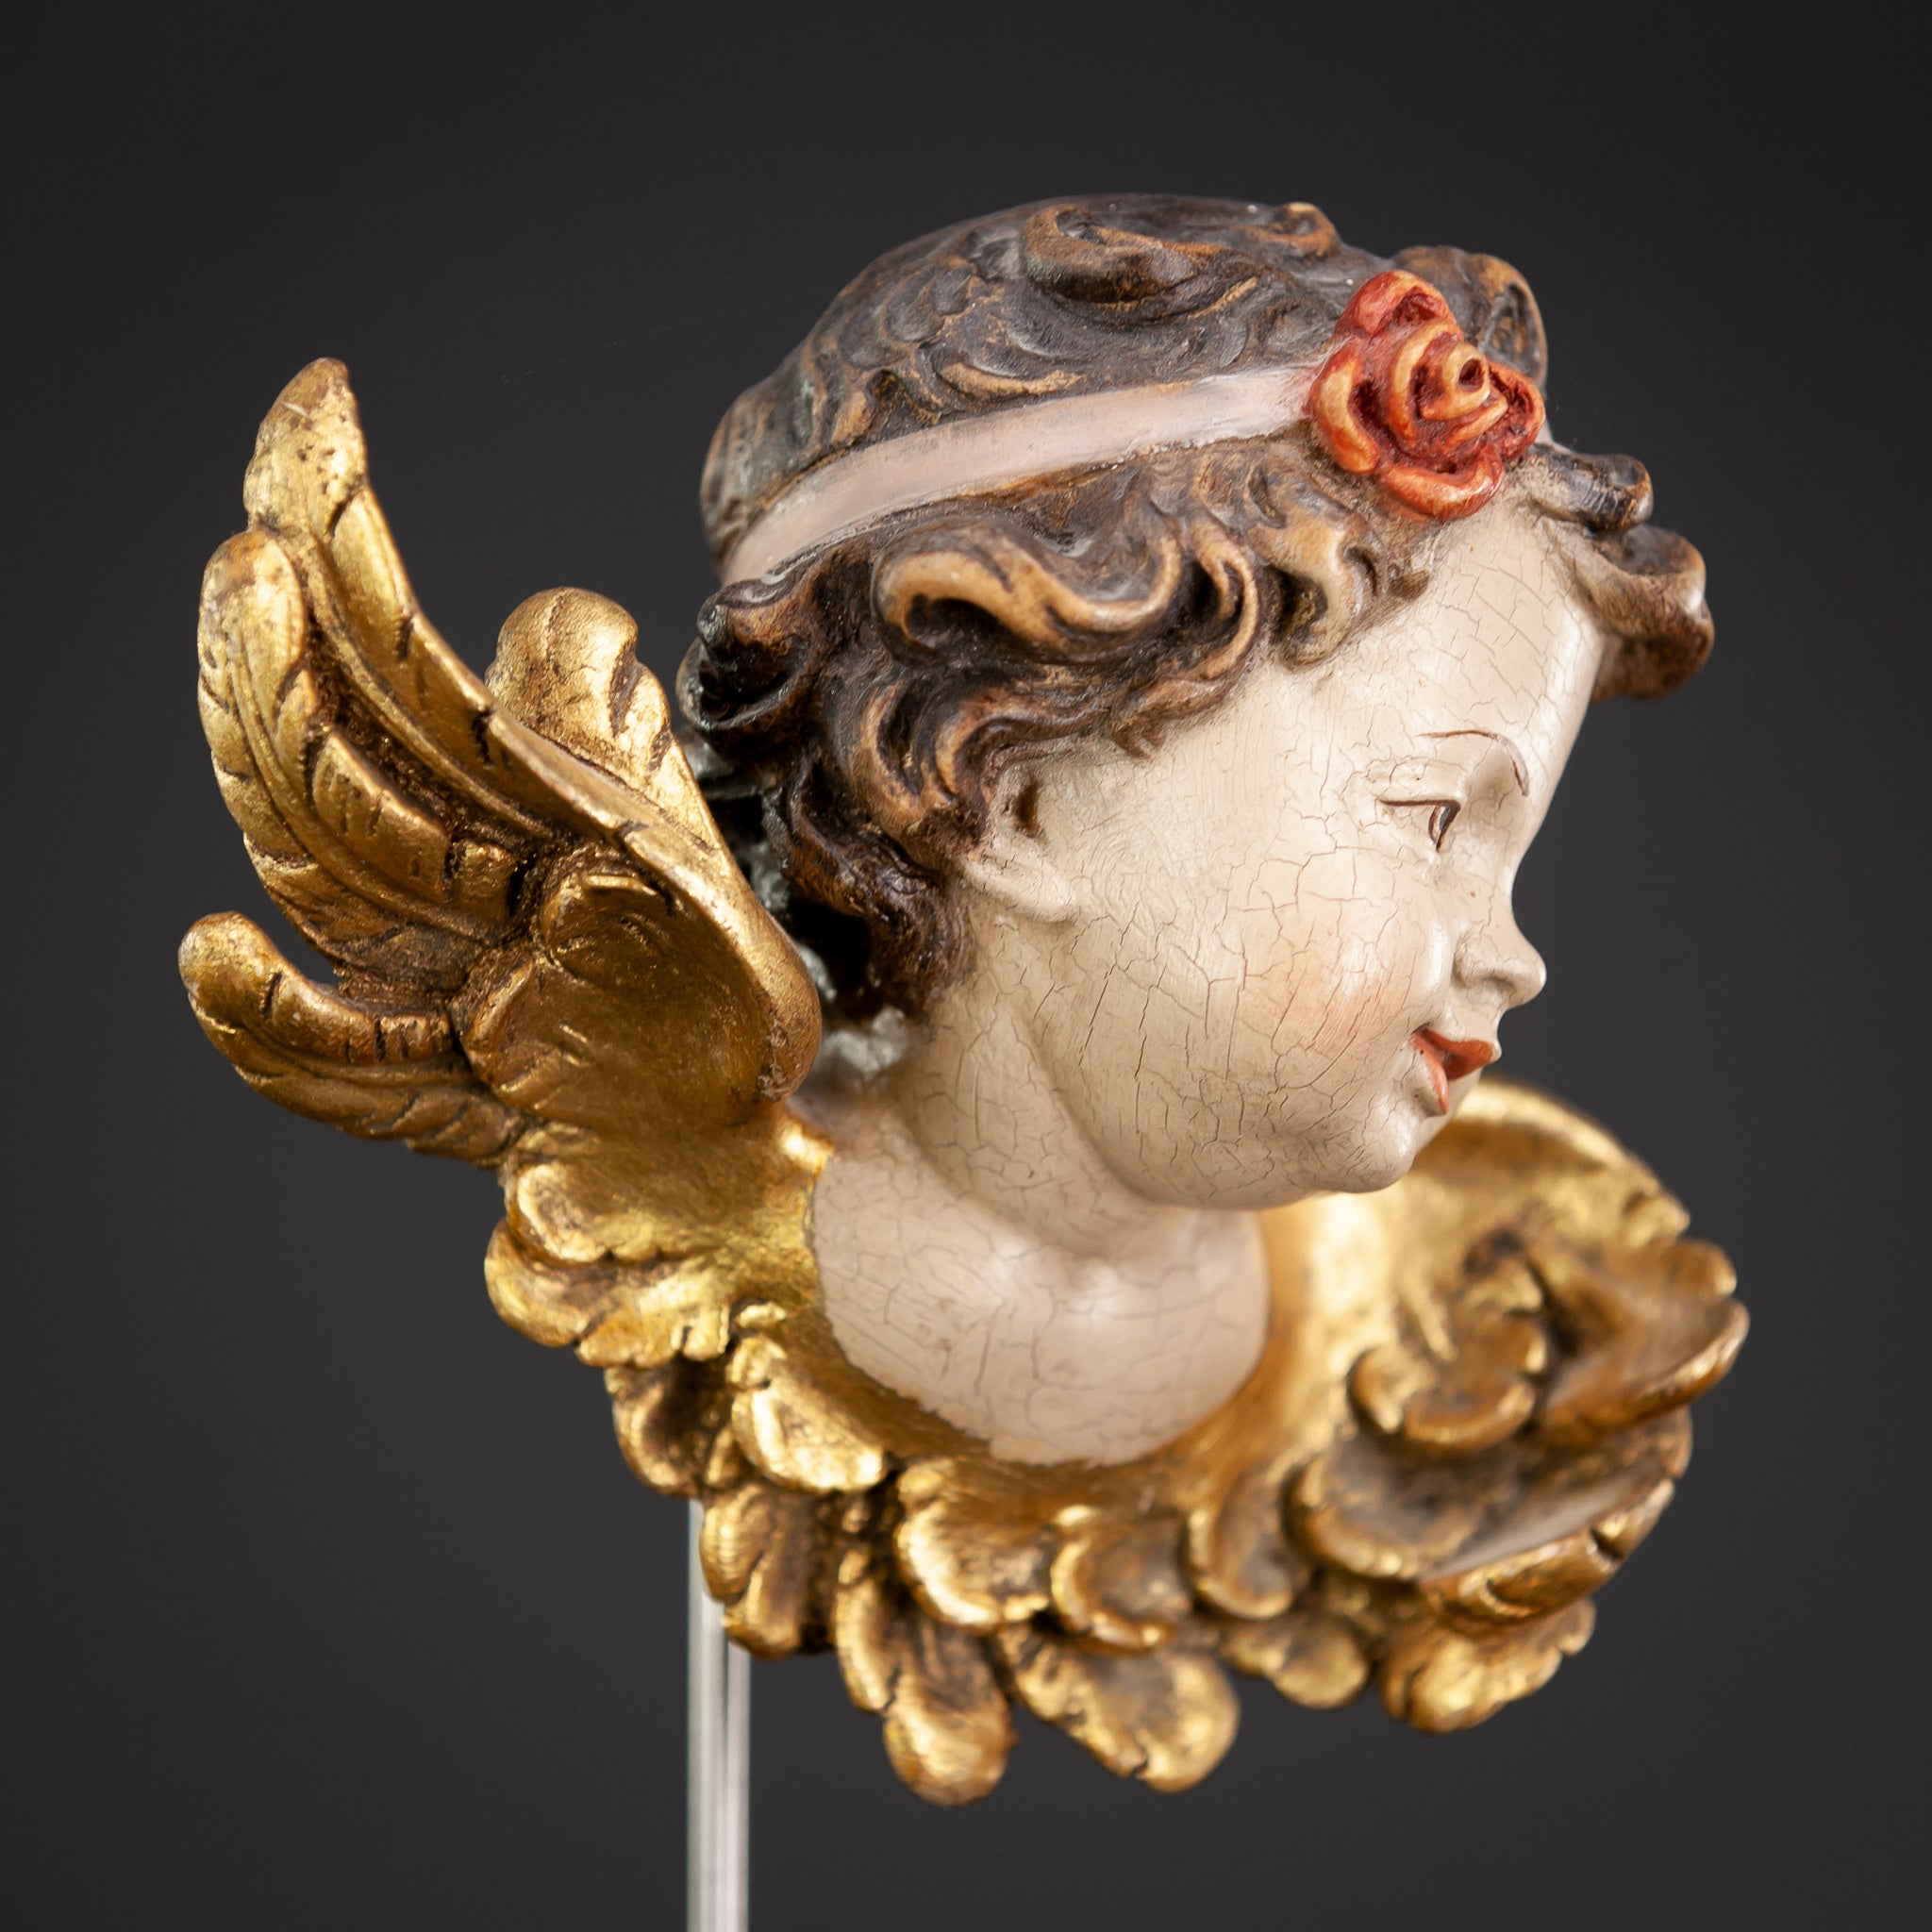 Angel Wood Carving Statue 15""